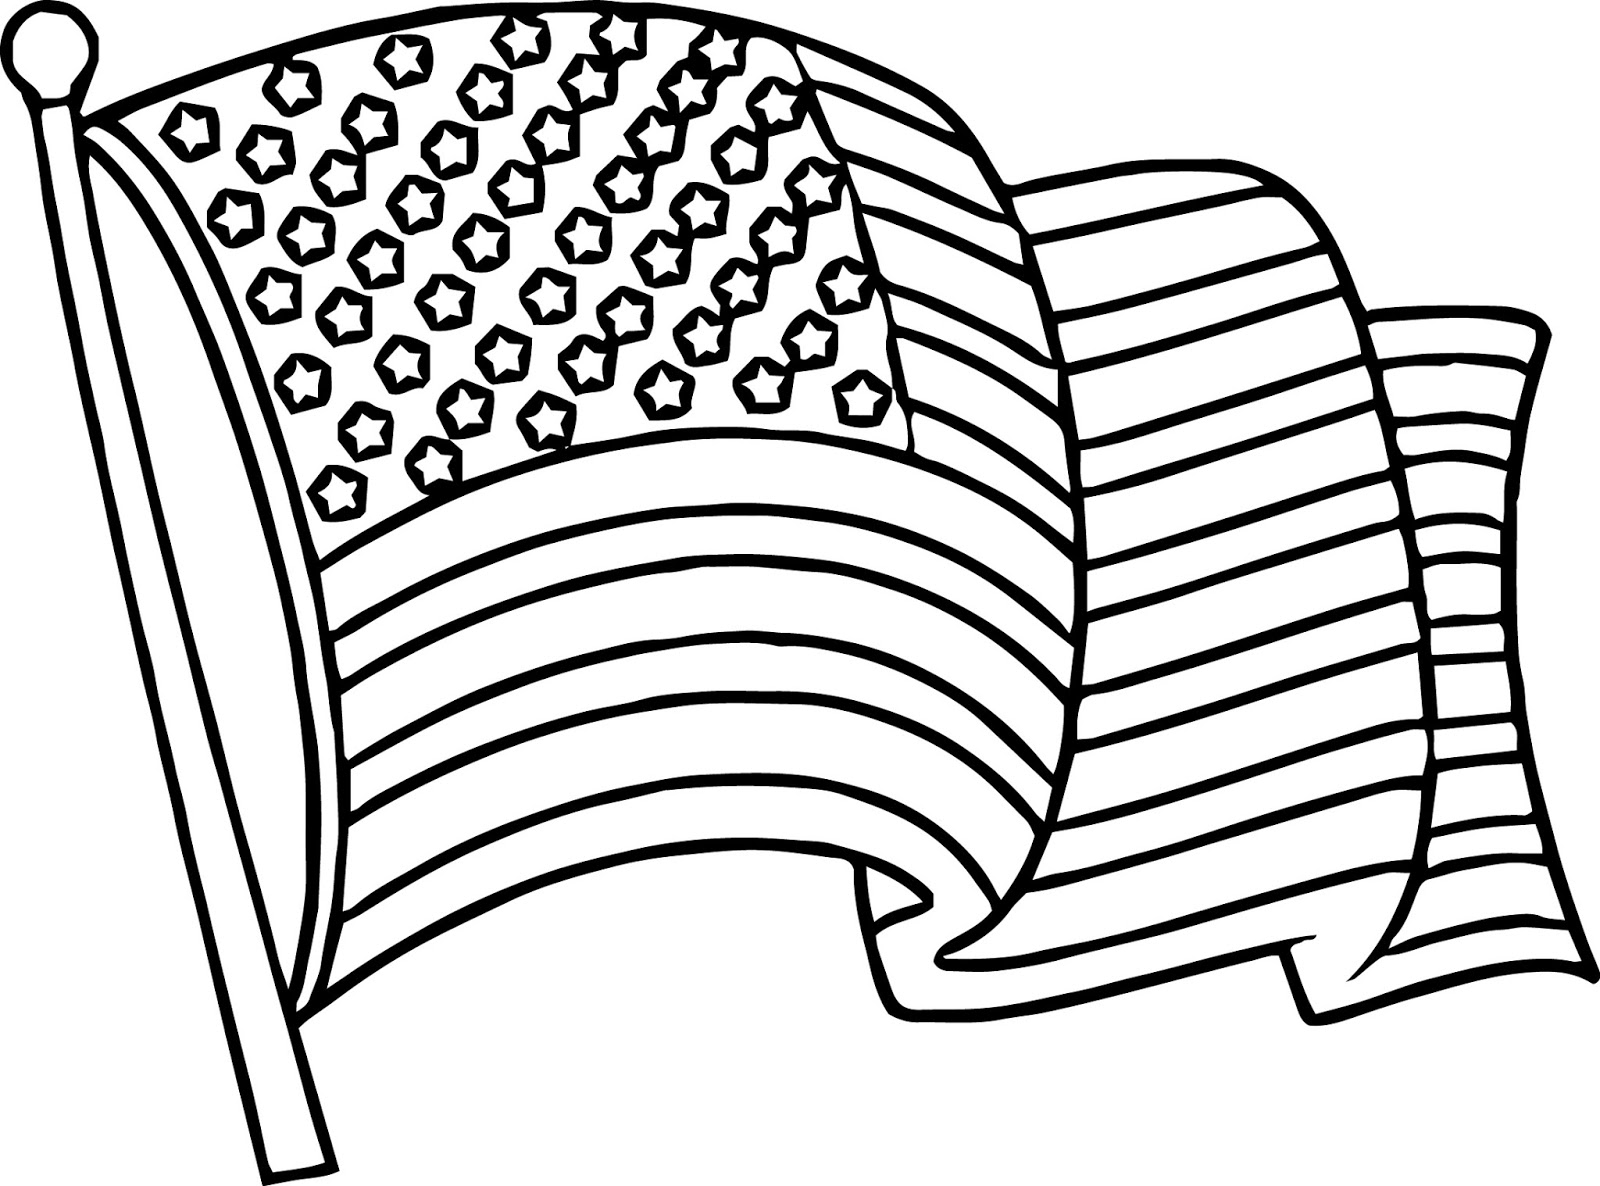 american flag to color american flag coloring pages best coloring pages for kids to flag color american